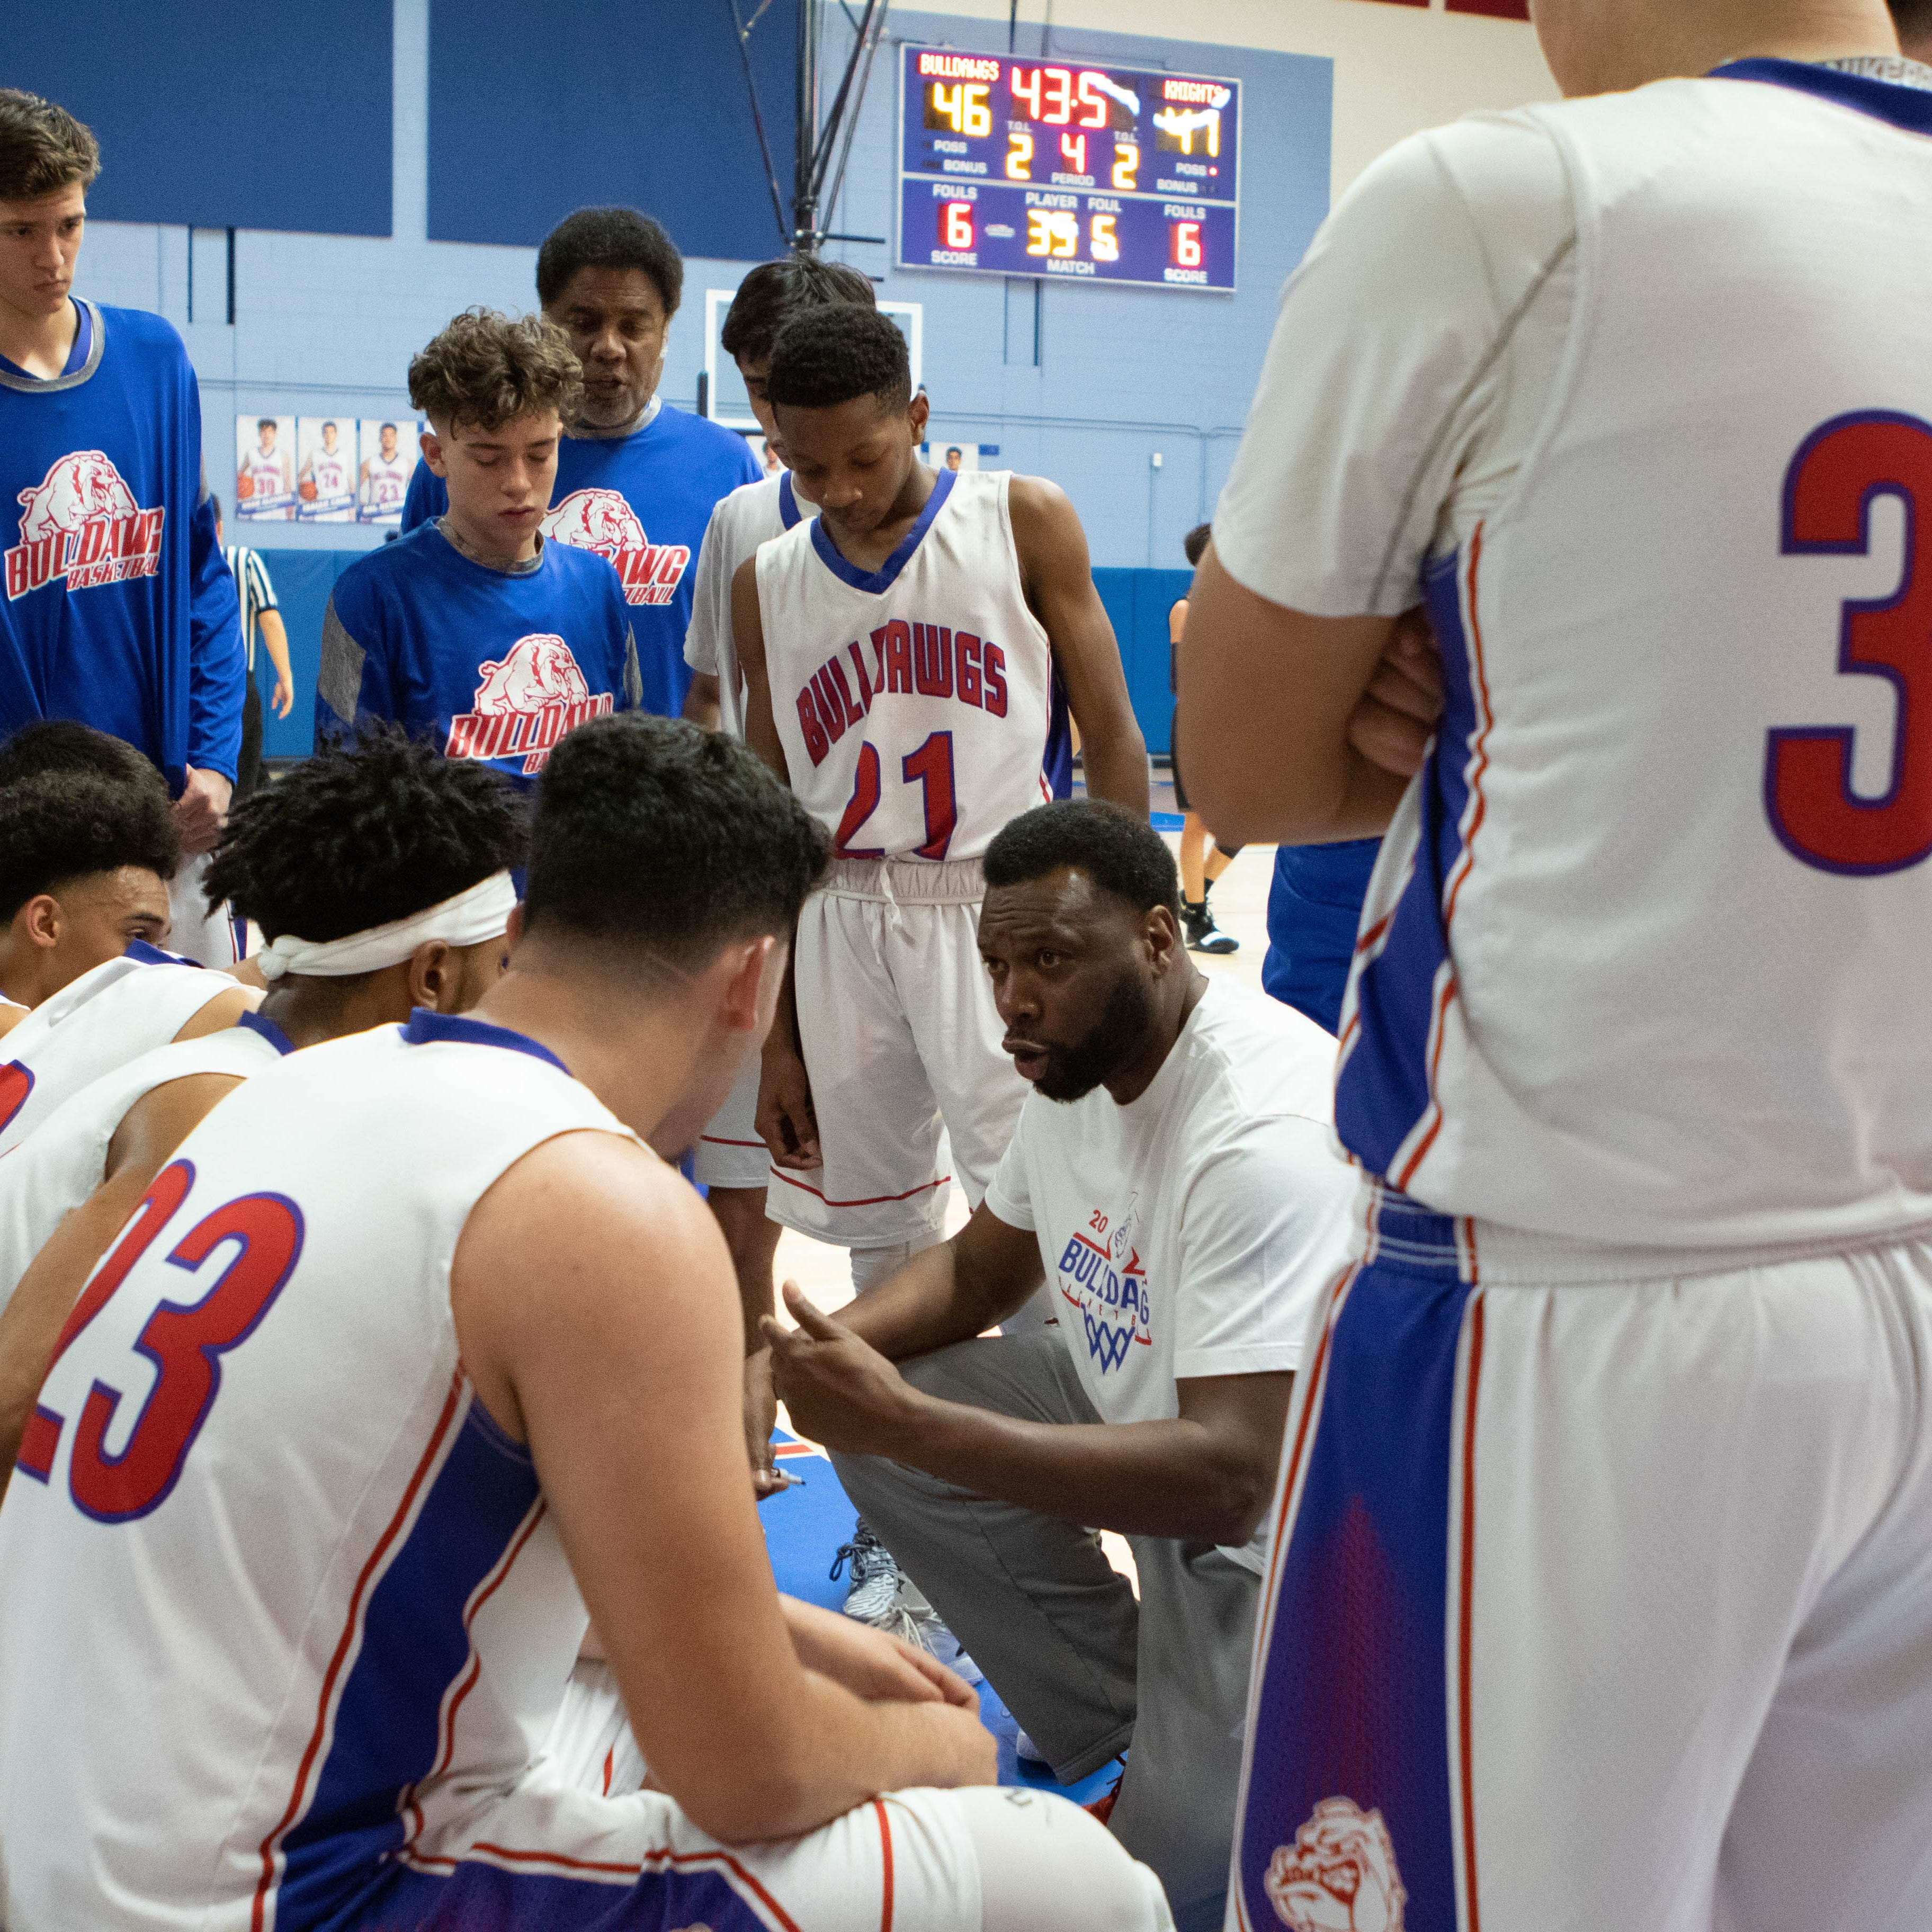 Unbeaten Las Cruces boys seeded No. 2 in state tournament